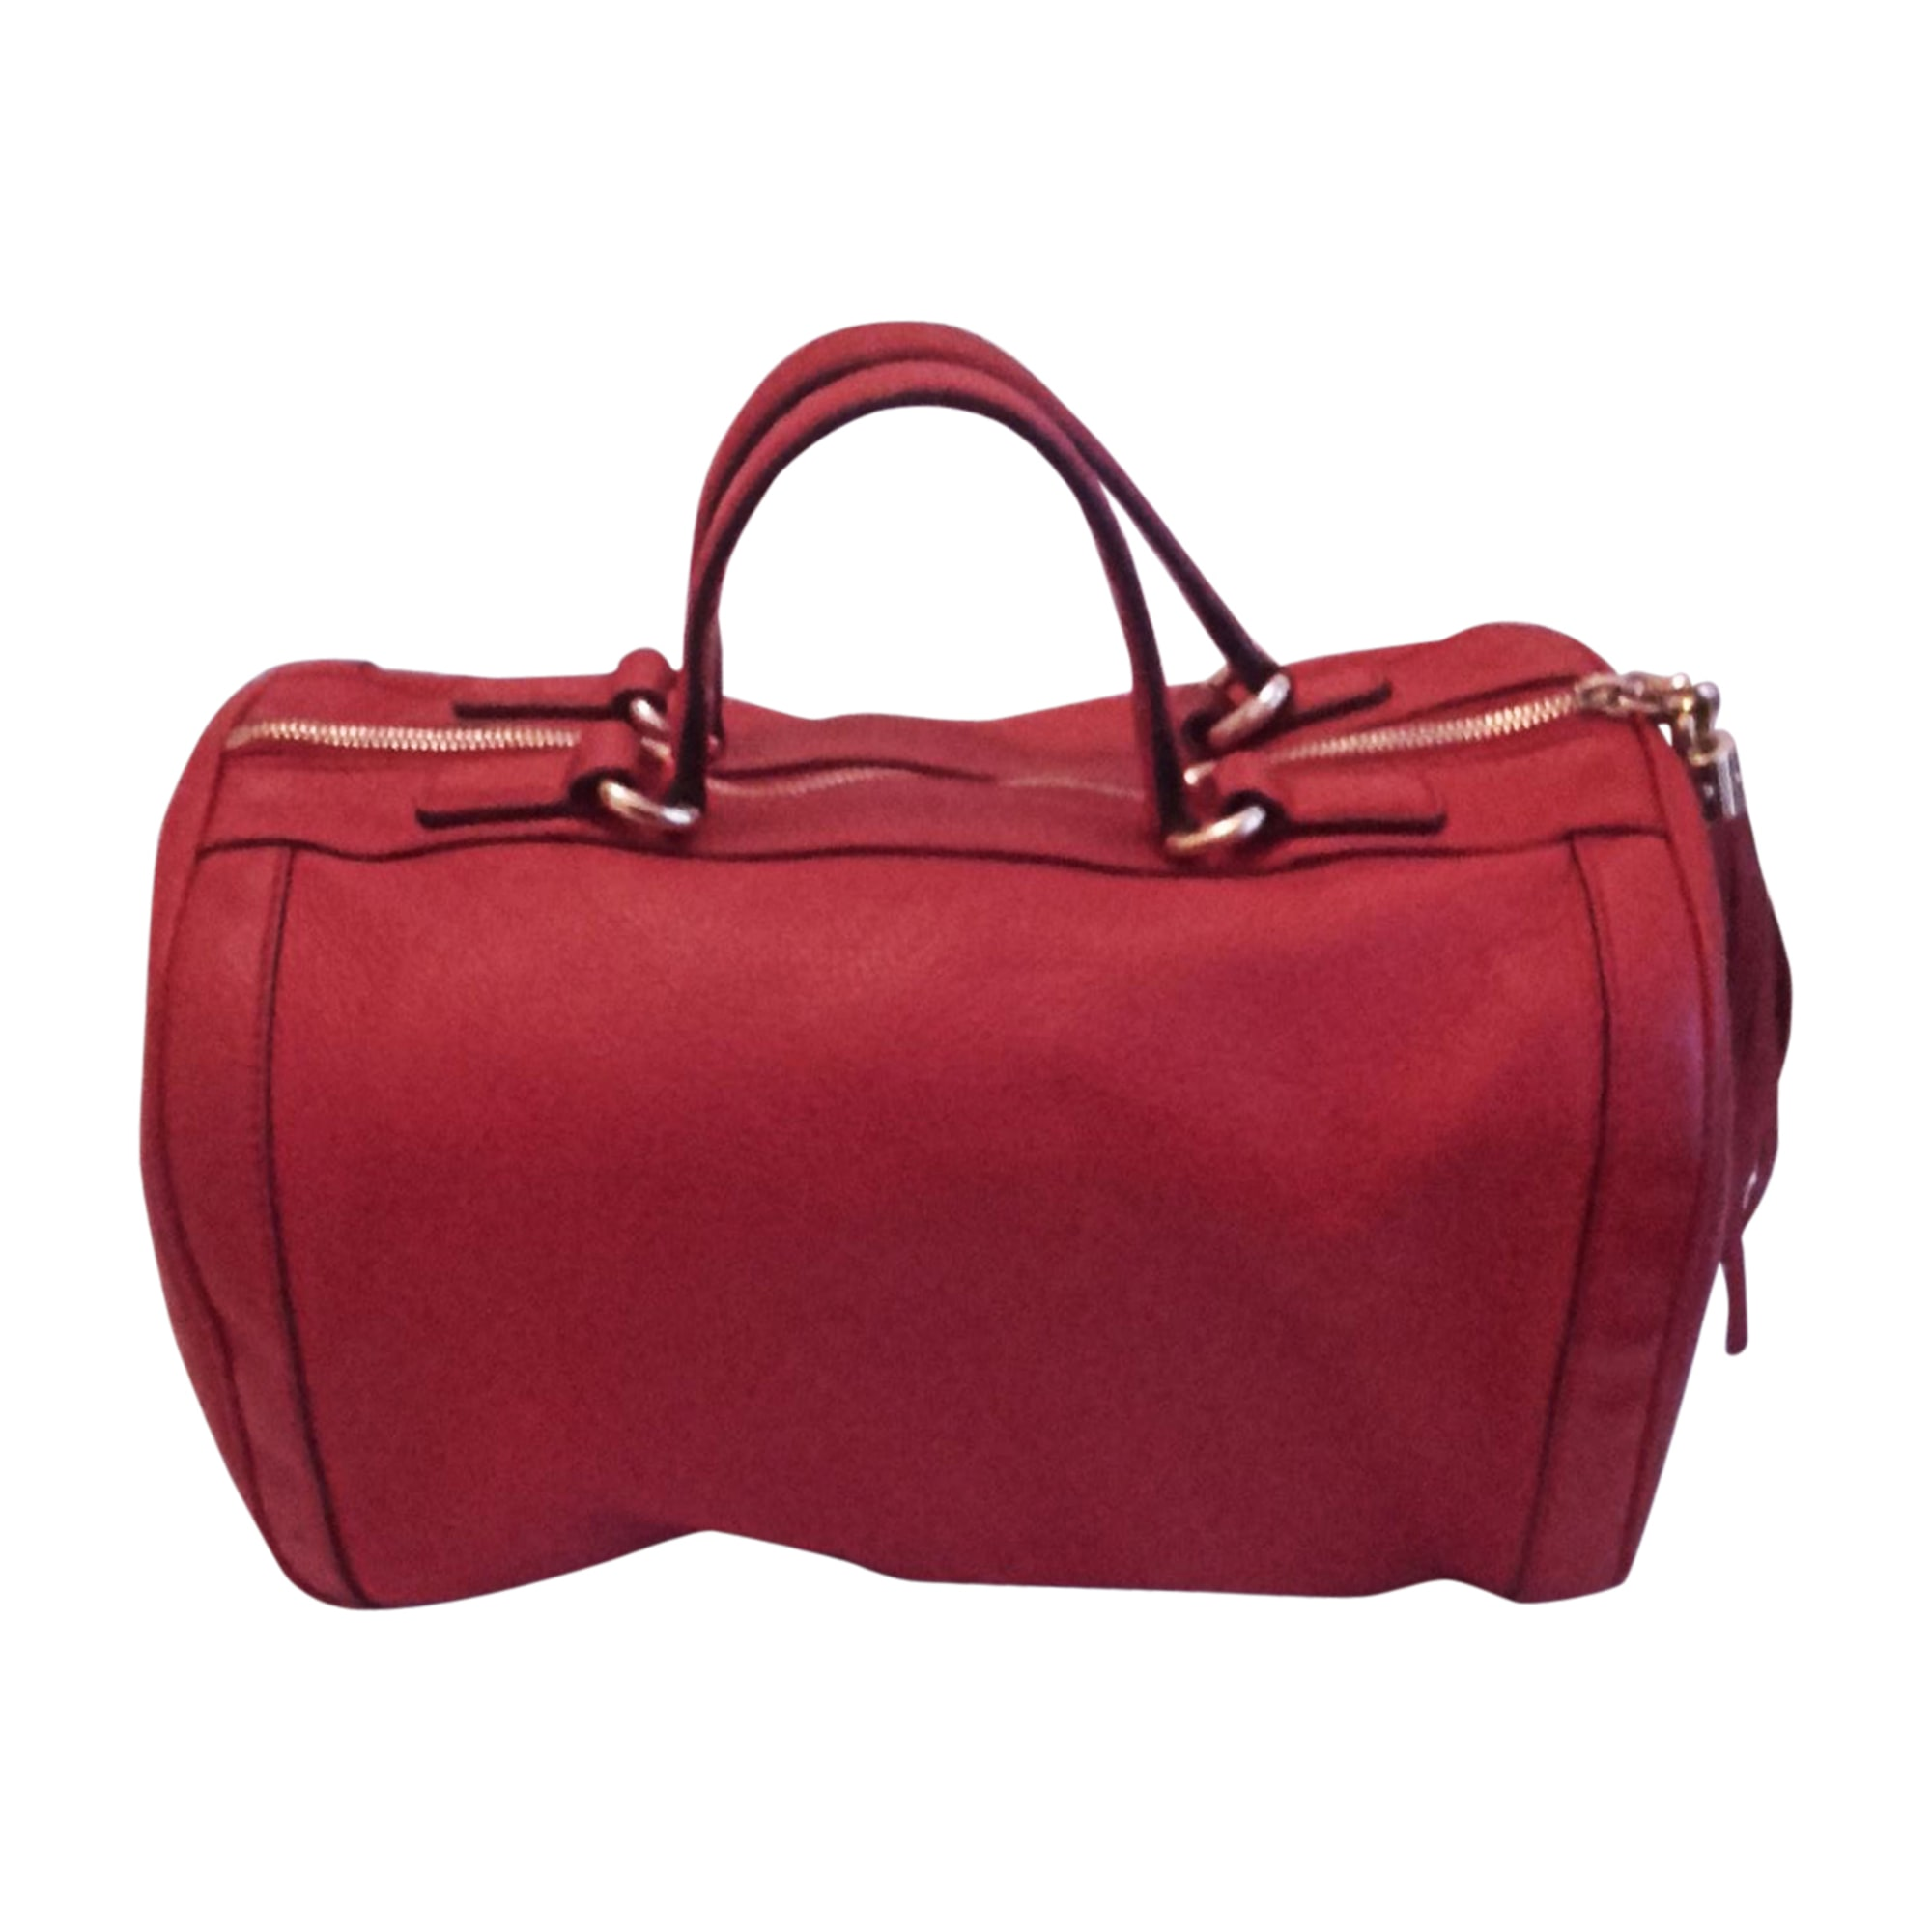 be53d238a54bf Leather Handbag GUCCI red - 7998293